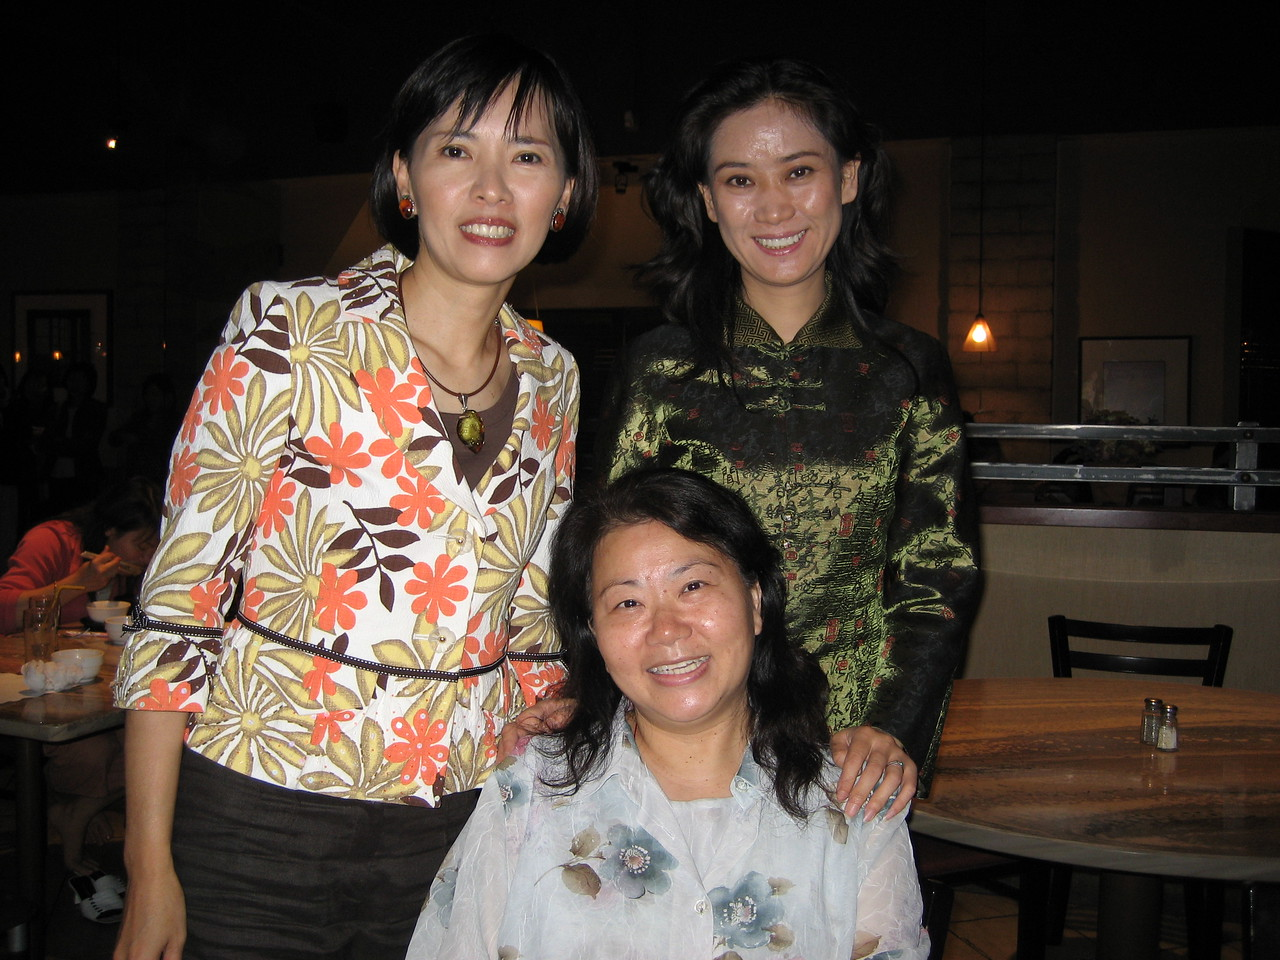 Bumpped into good friend - diana and sister Tang at the restaurant before the show,          what a small world!